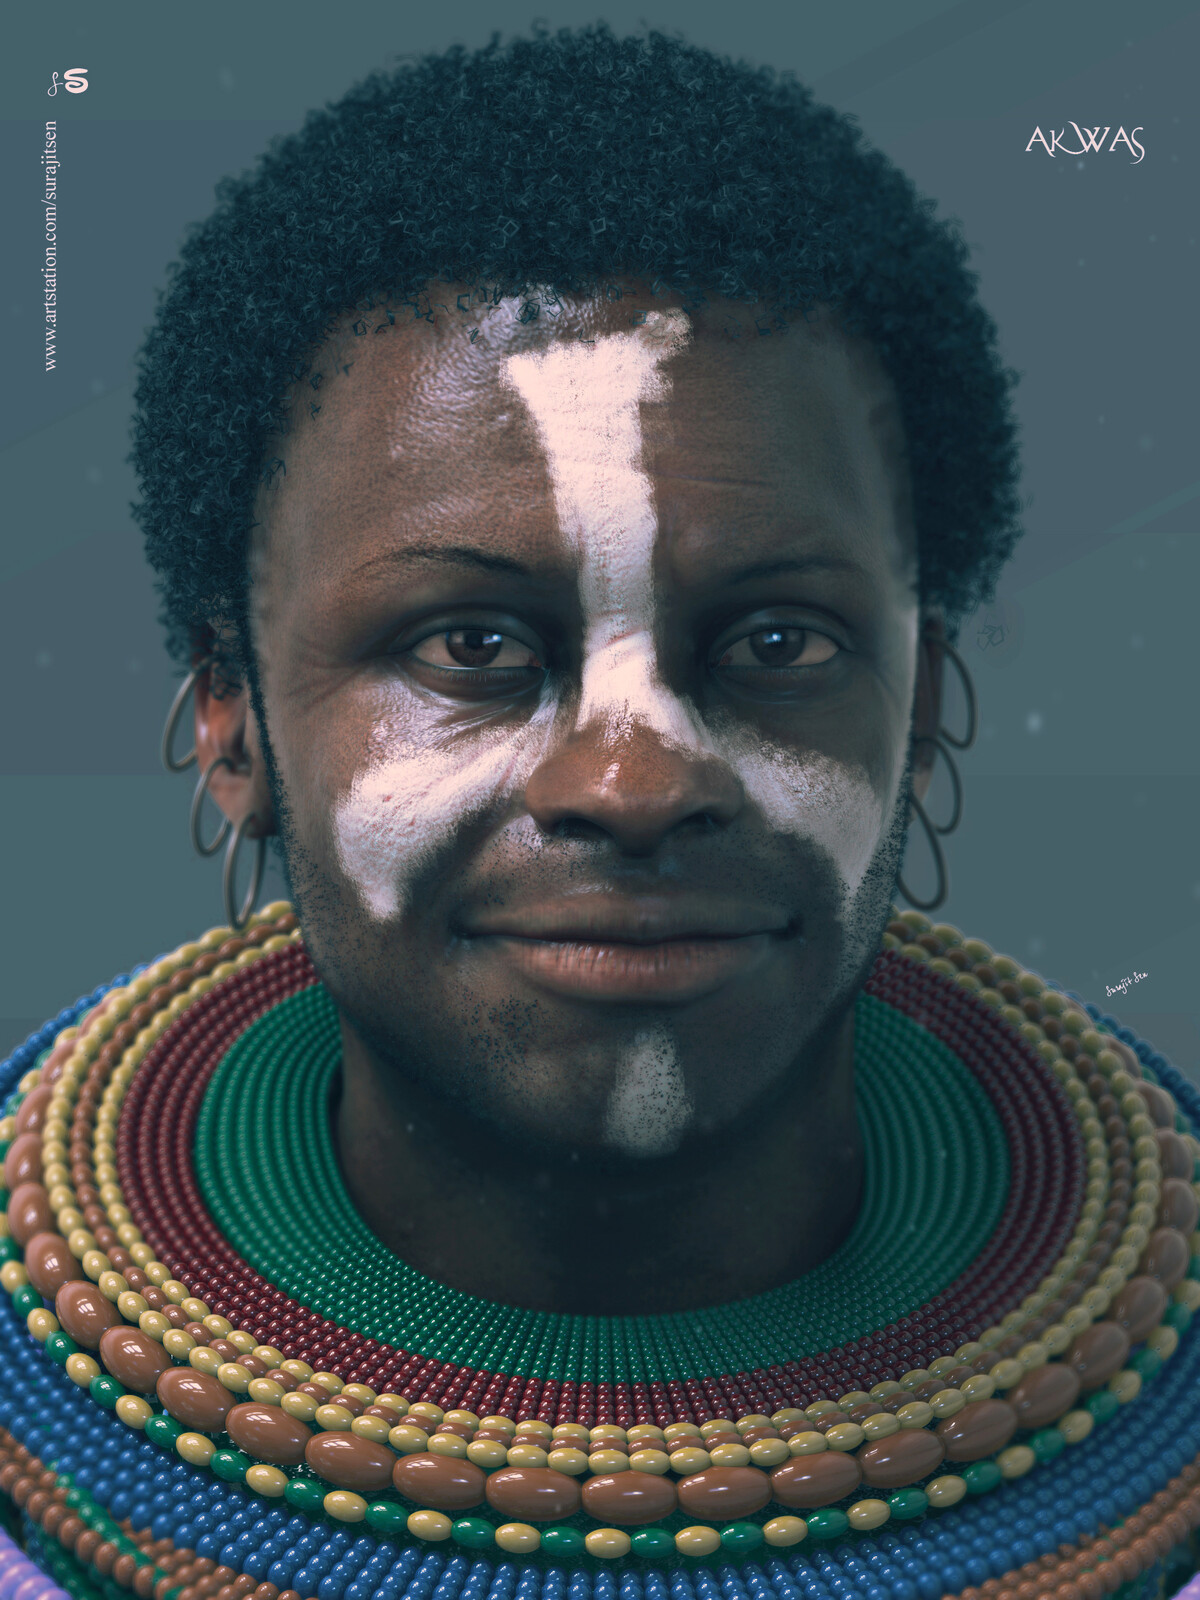 """I have done some works and updated one of my CG Characters """"AKWAS"""" - African Tribal CG Character. Hope you like it  :)"""